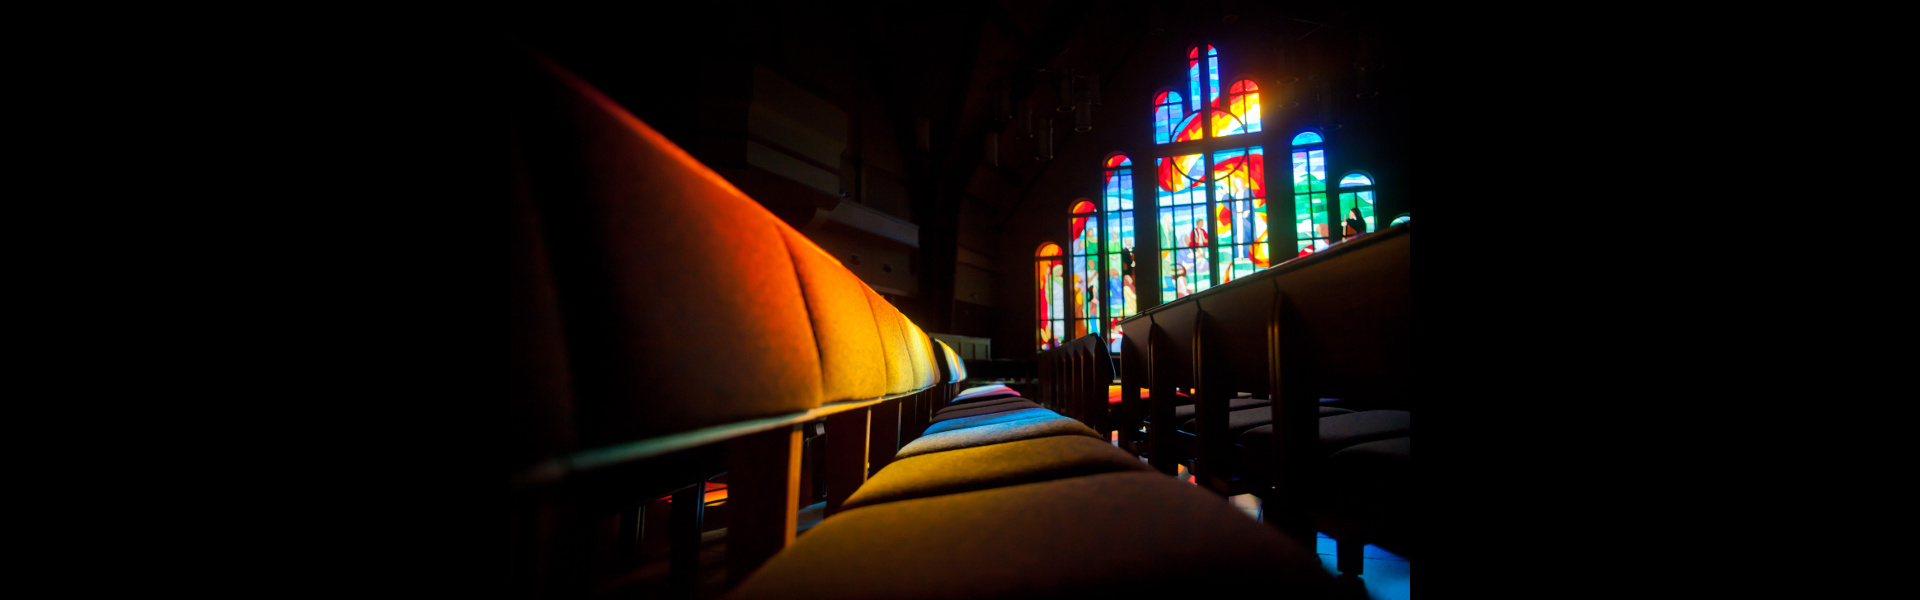 Light shining through the stained glass windows in the Chapel sanctuary